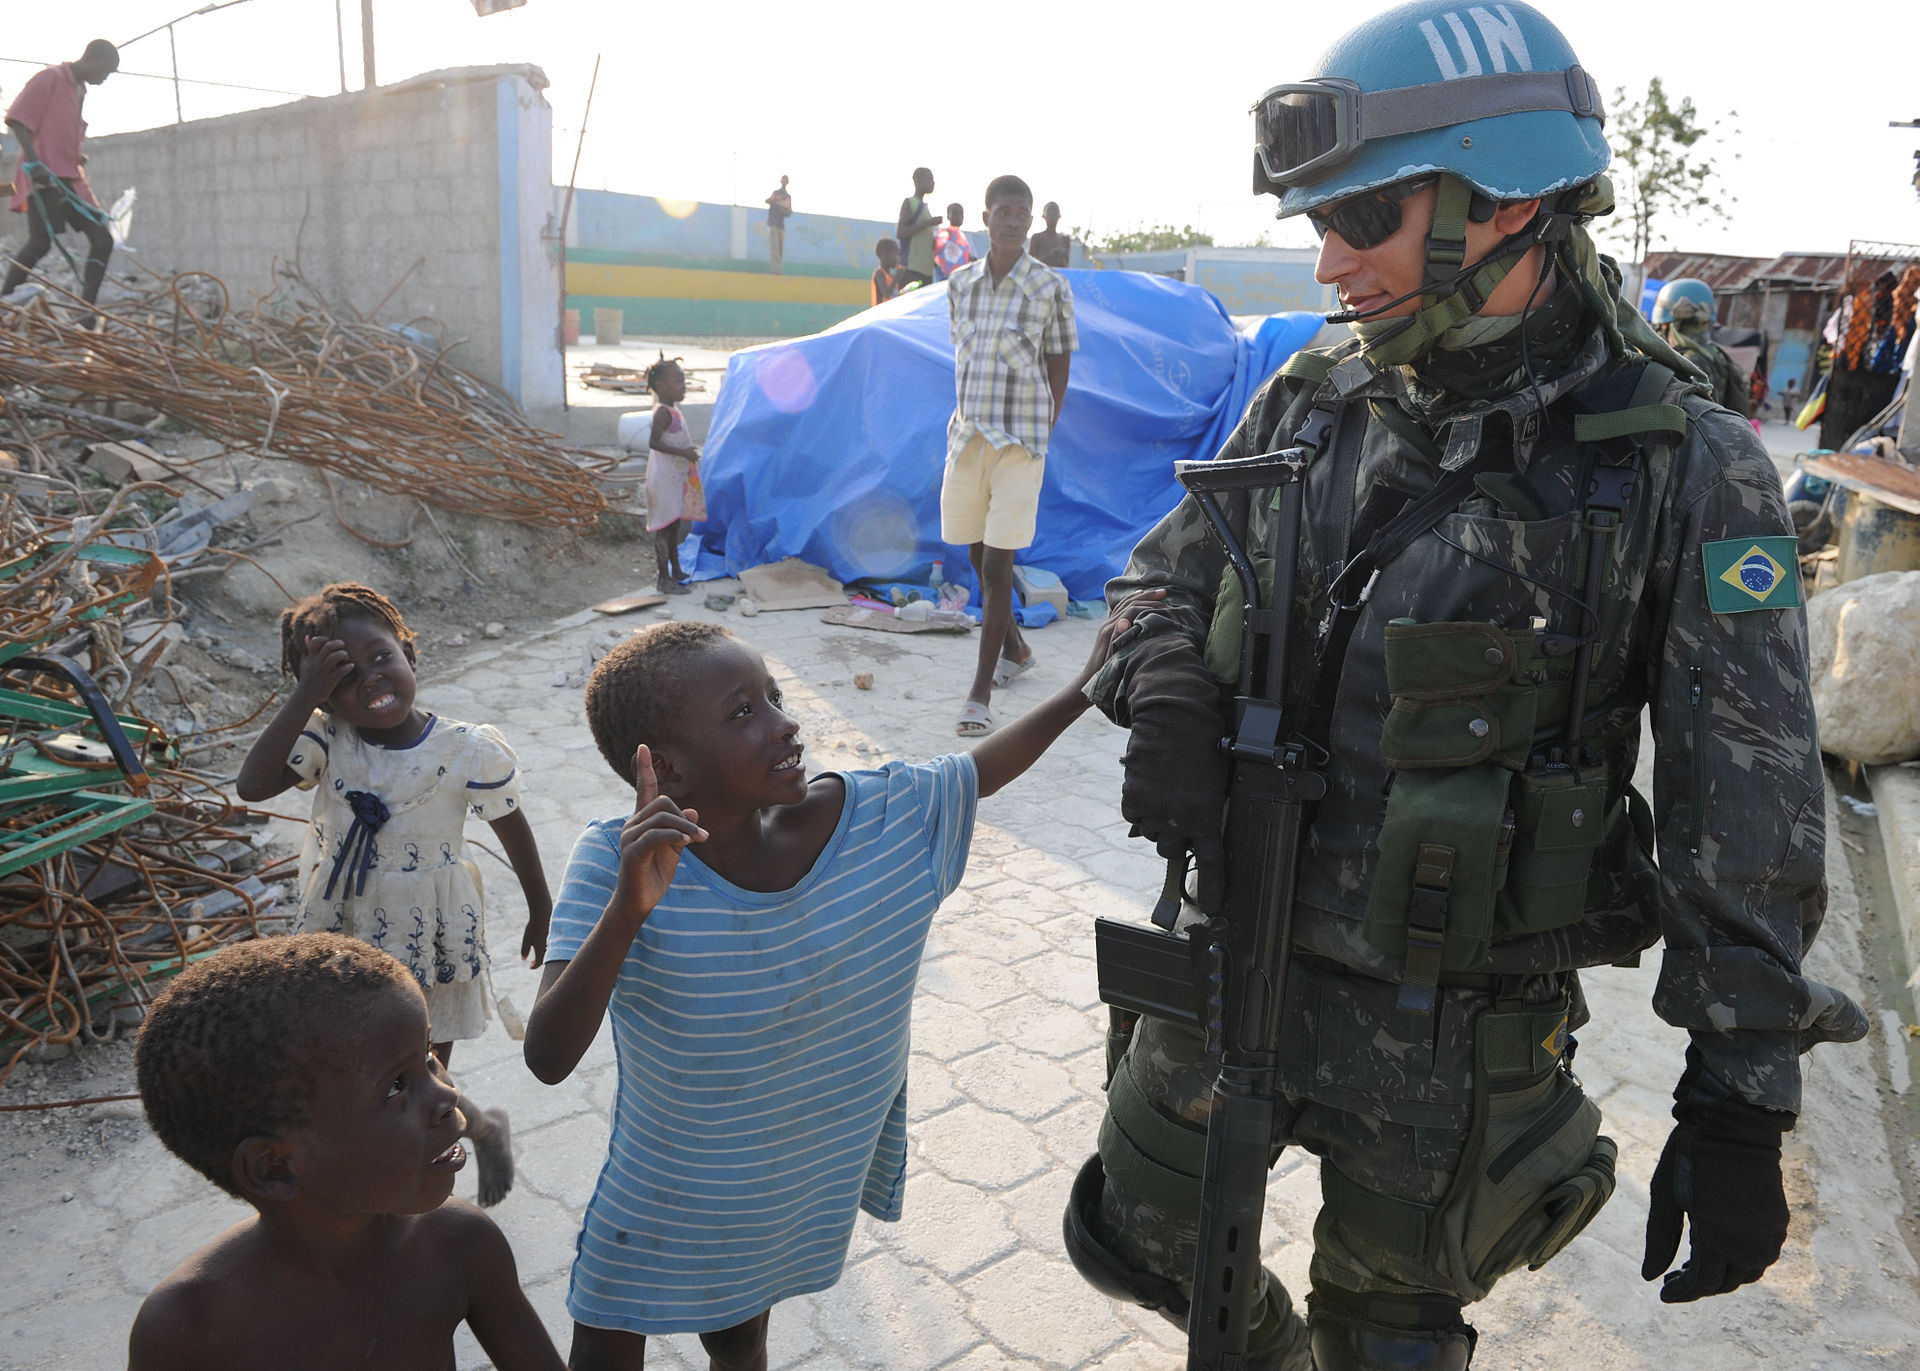 Brazilian Army participating in a 2010 UN peacekeeping mission in Haiti. (Mass Communication Specialist 1st Class David A. FrechU.S. Navy Photo/Wikimedia)